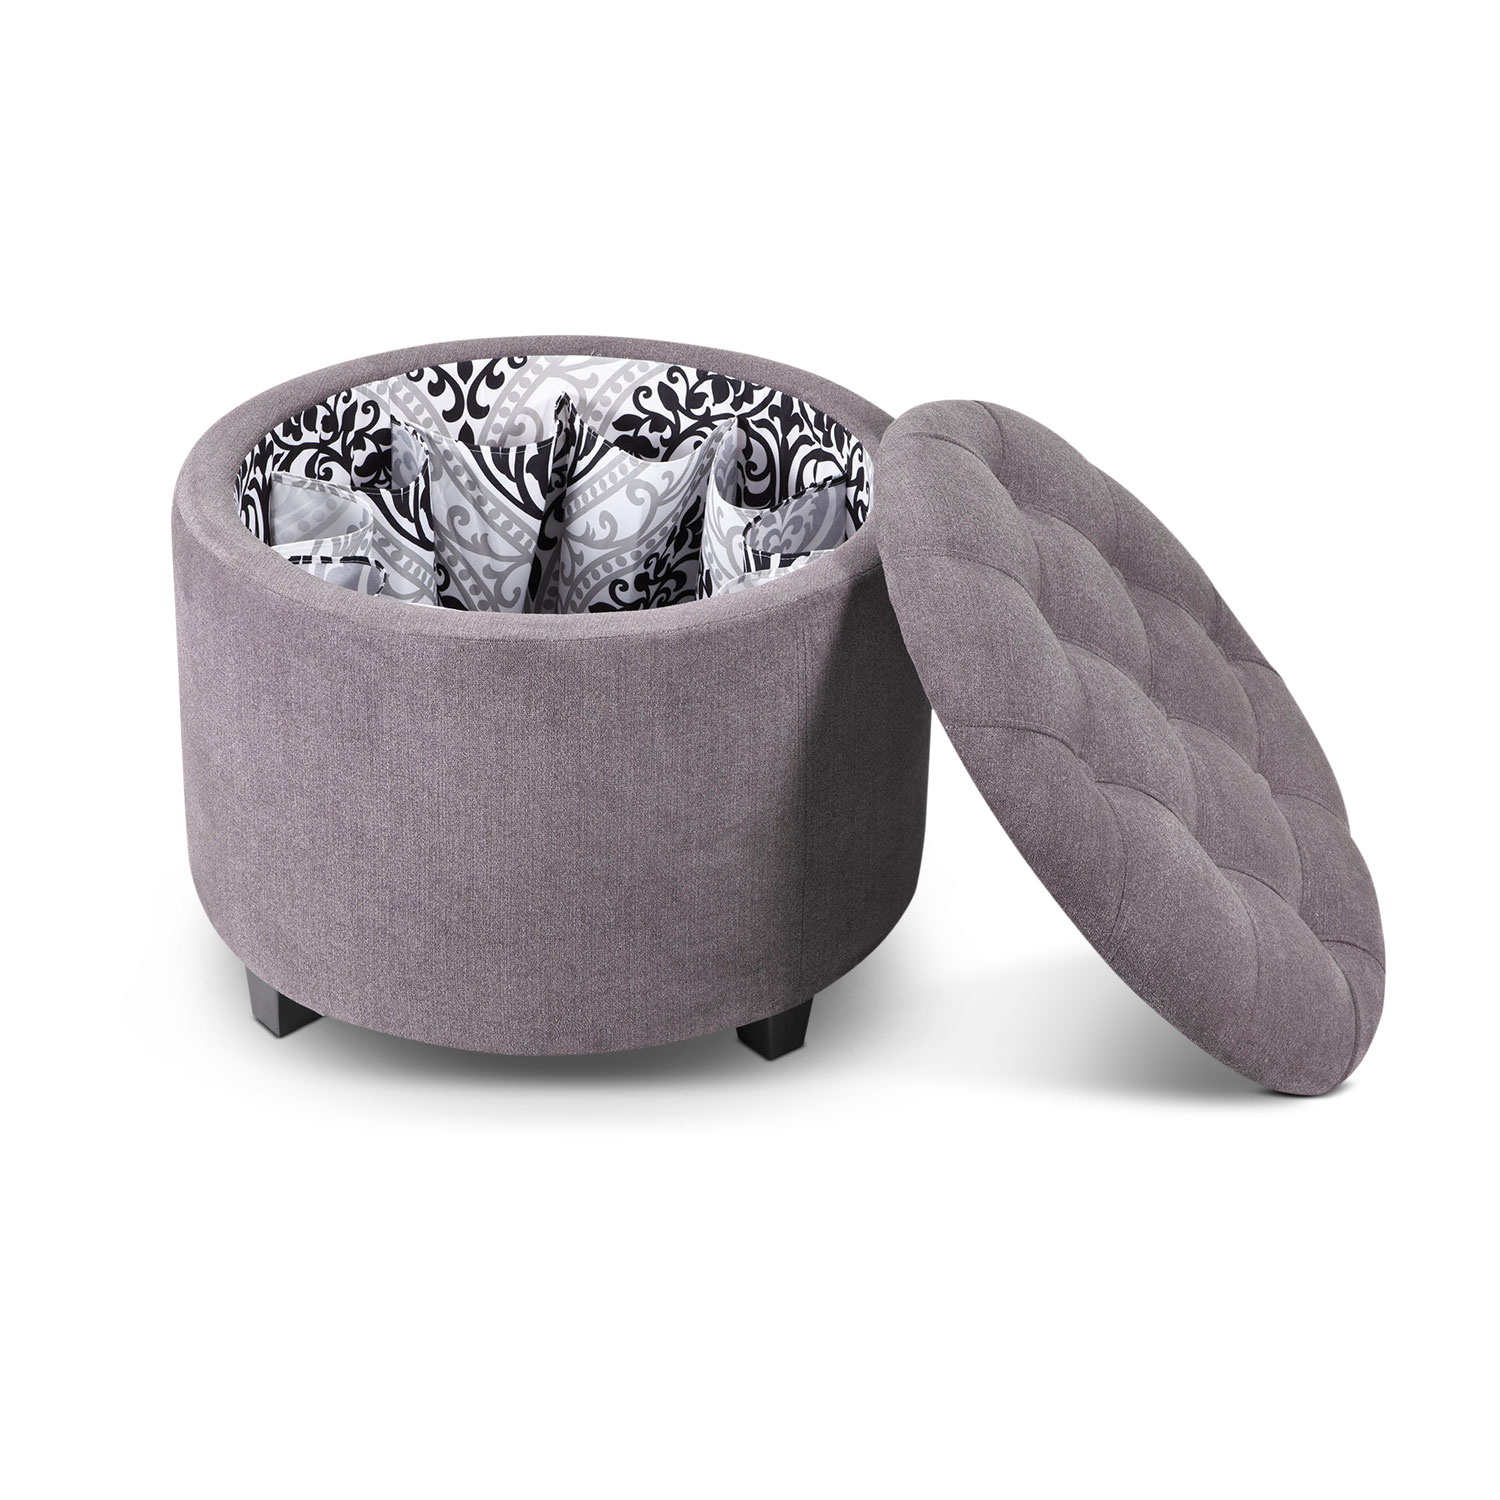 Lisbon Ottoman with Shoe Holder - Gray